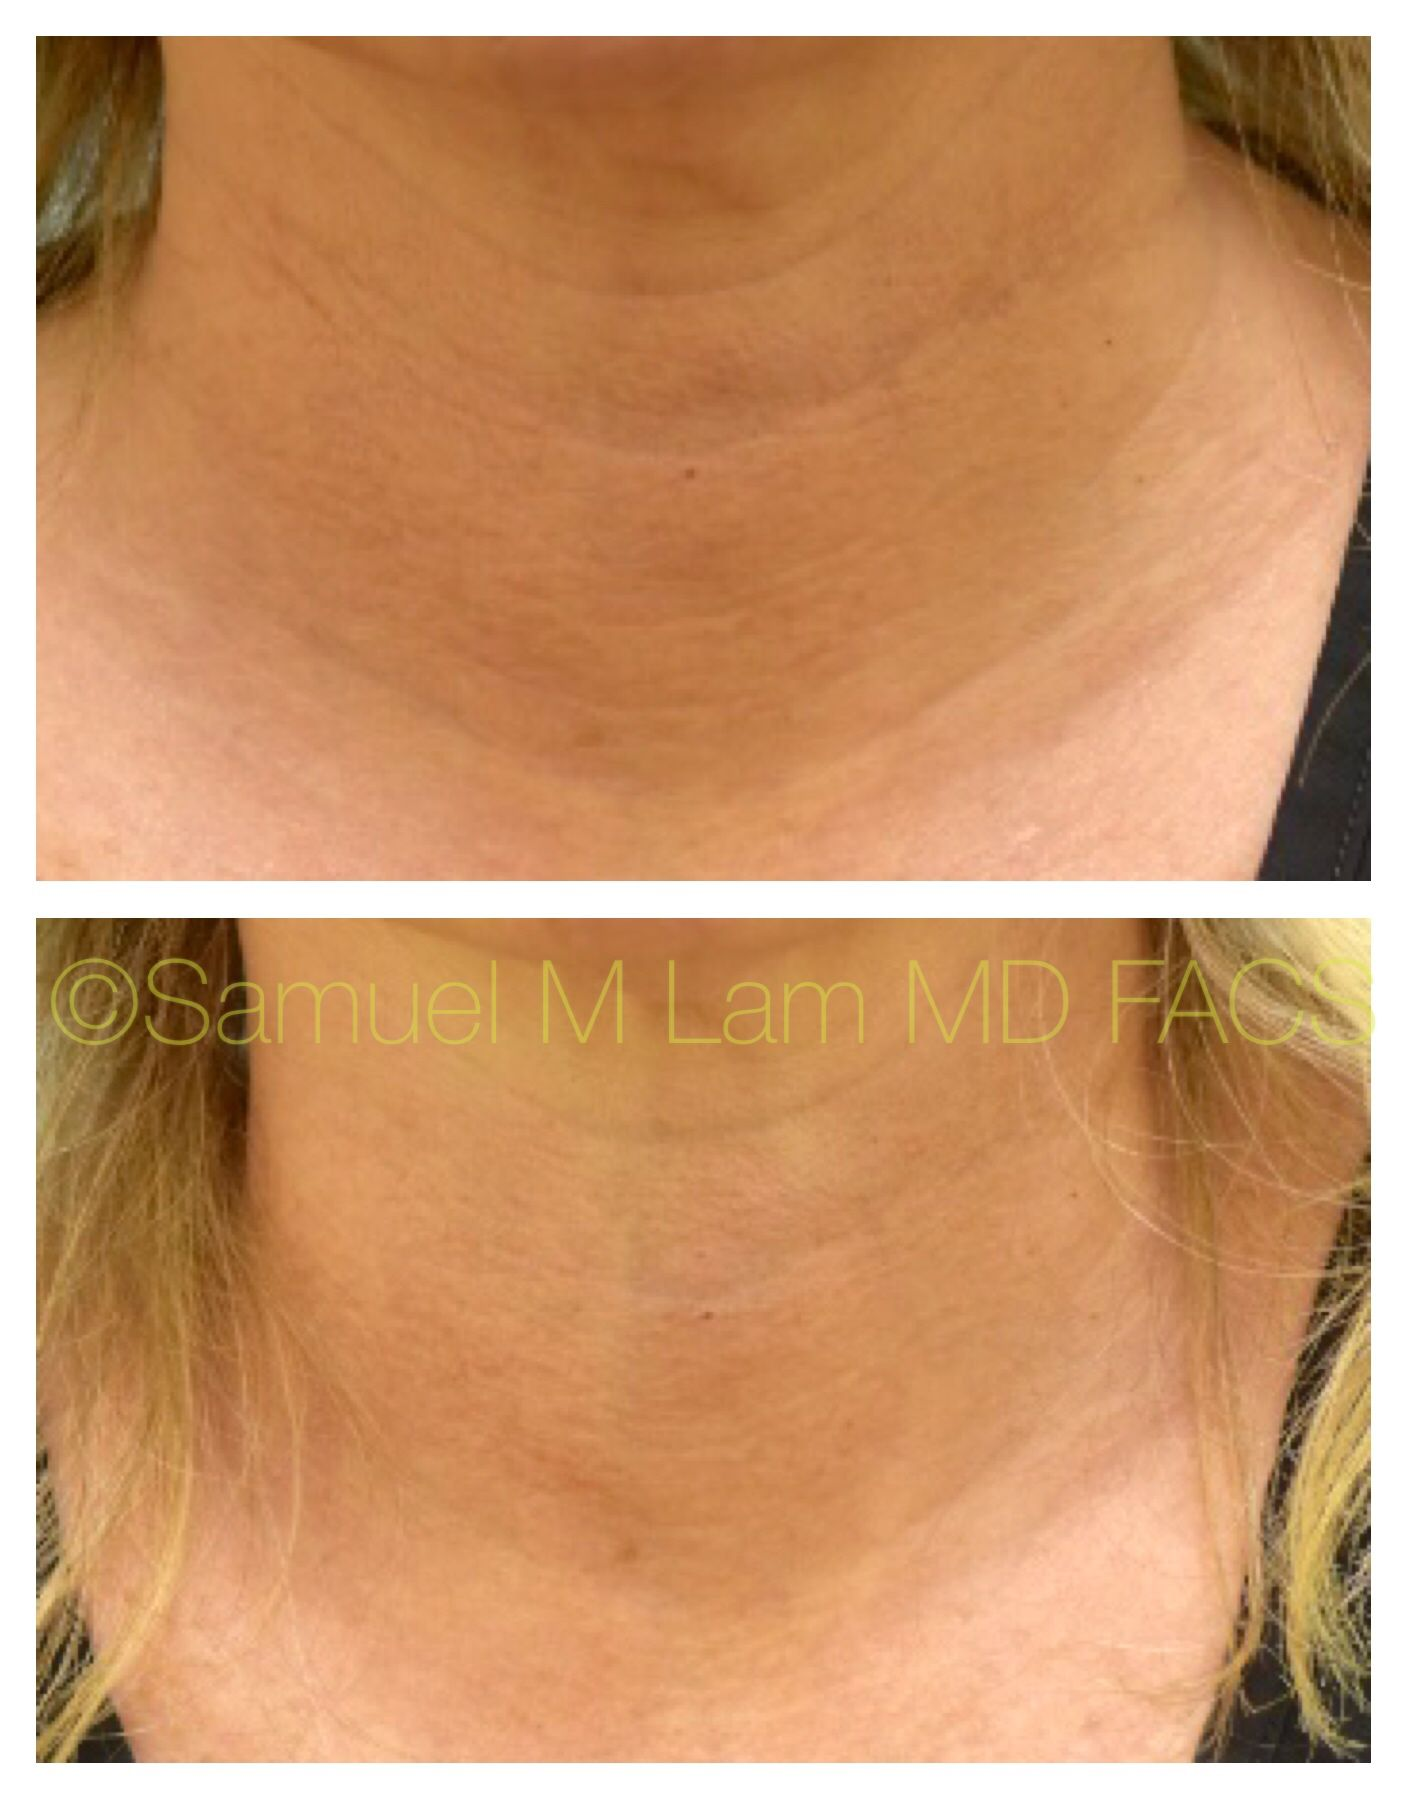 This patient had Botox into the neck using a technique